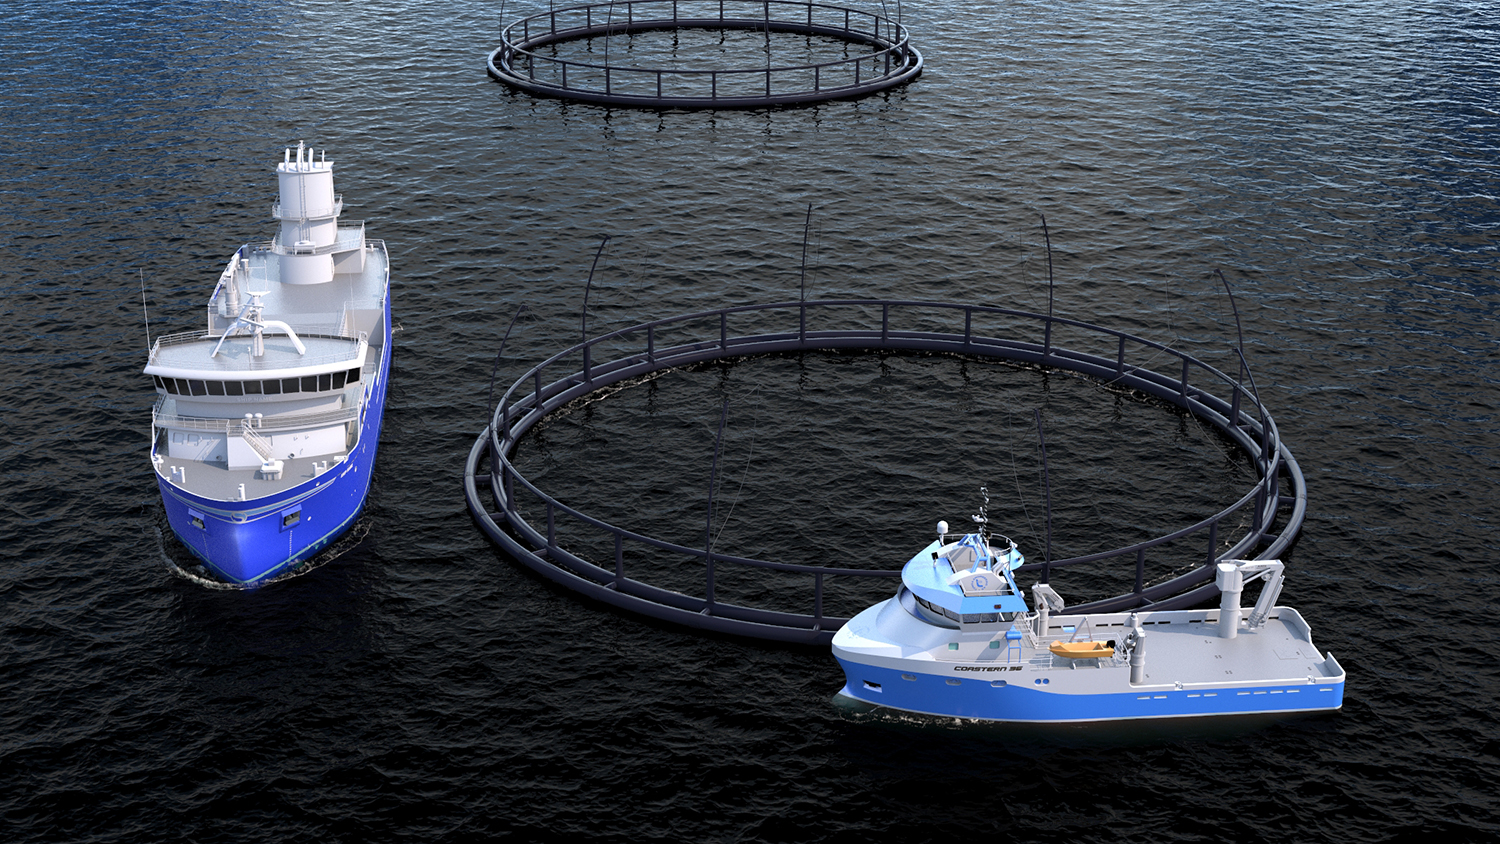 Hybrid propulsion and automation systems contribute to sustainability in the aquaculture industry